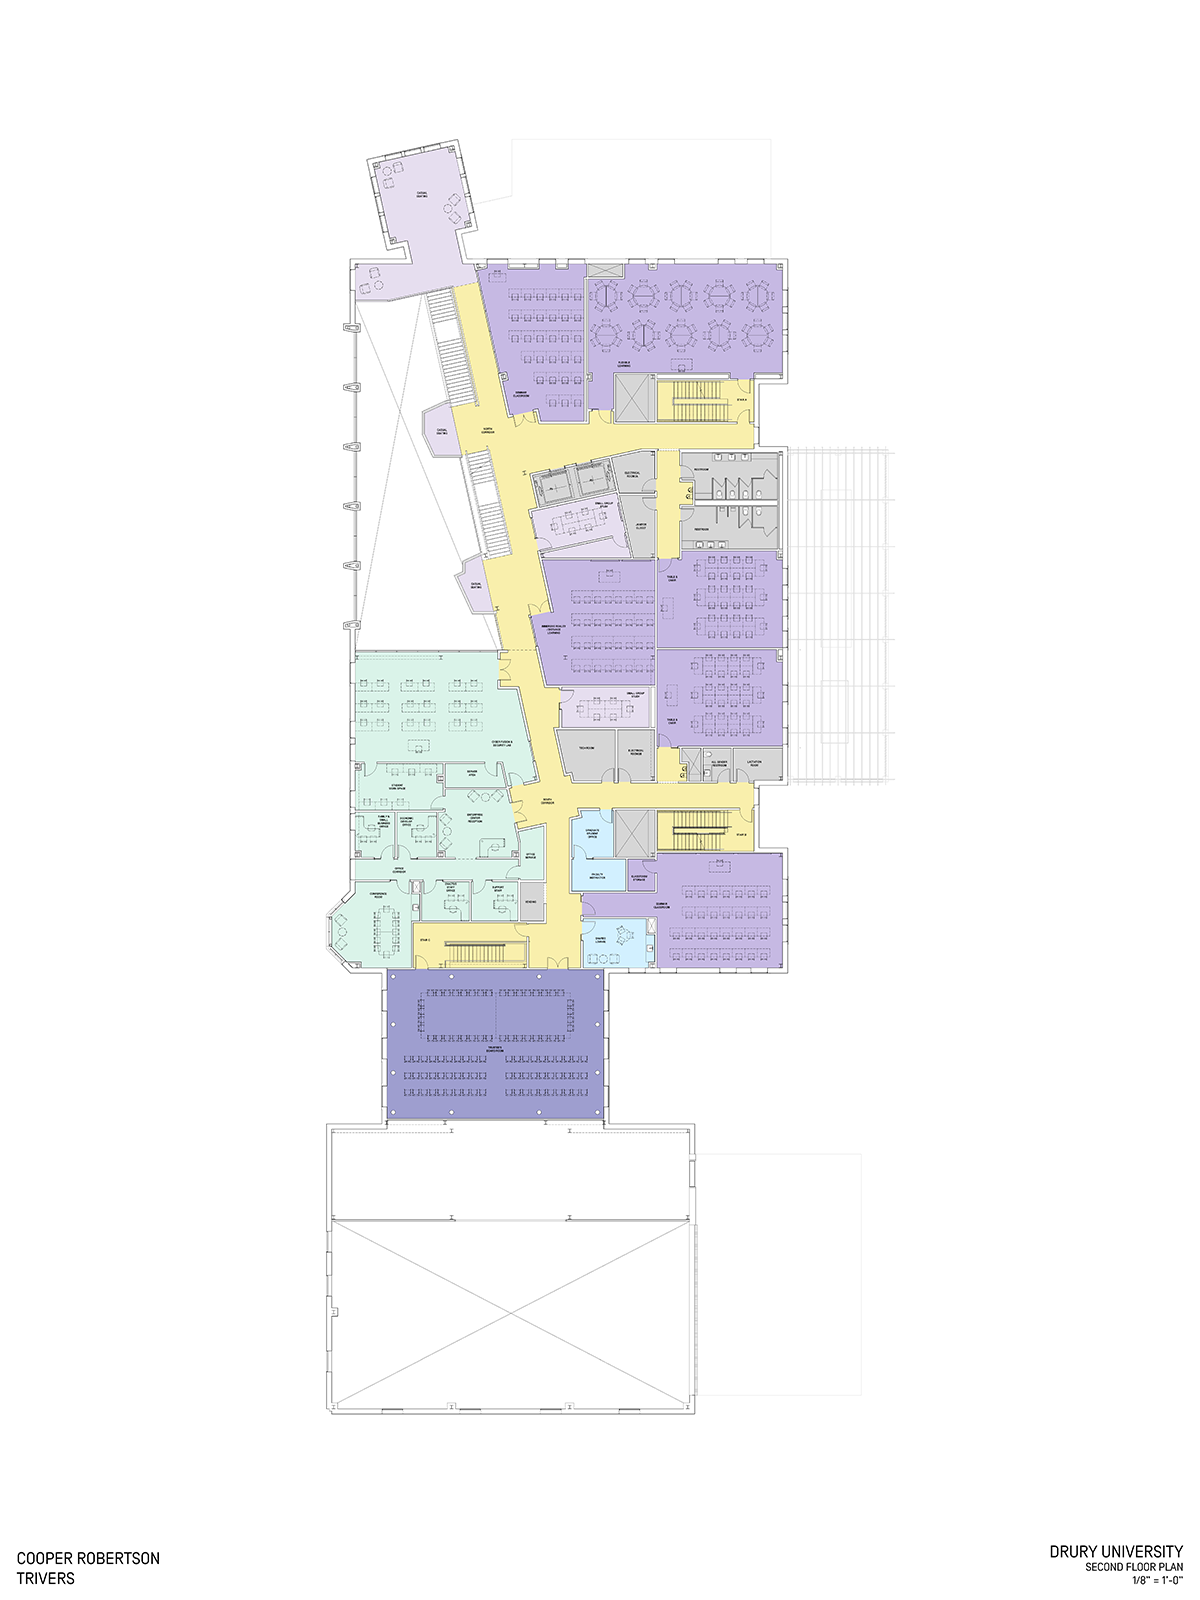 """Second floor plan for the C.H. """"Chub"""" O'Reilly Enterprise Center and Breech School of Business Administration."""